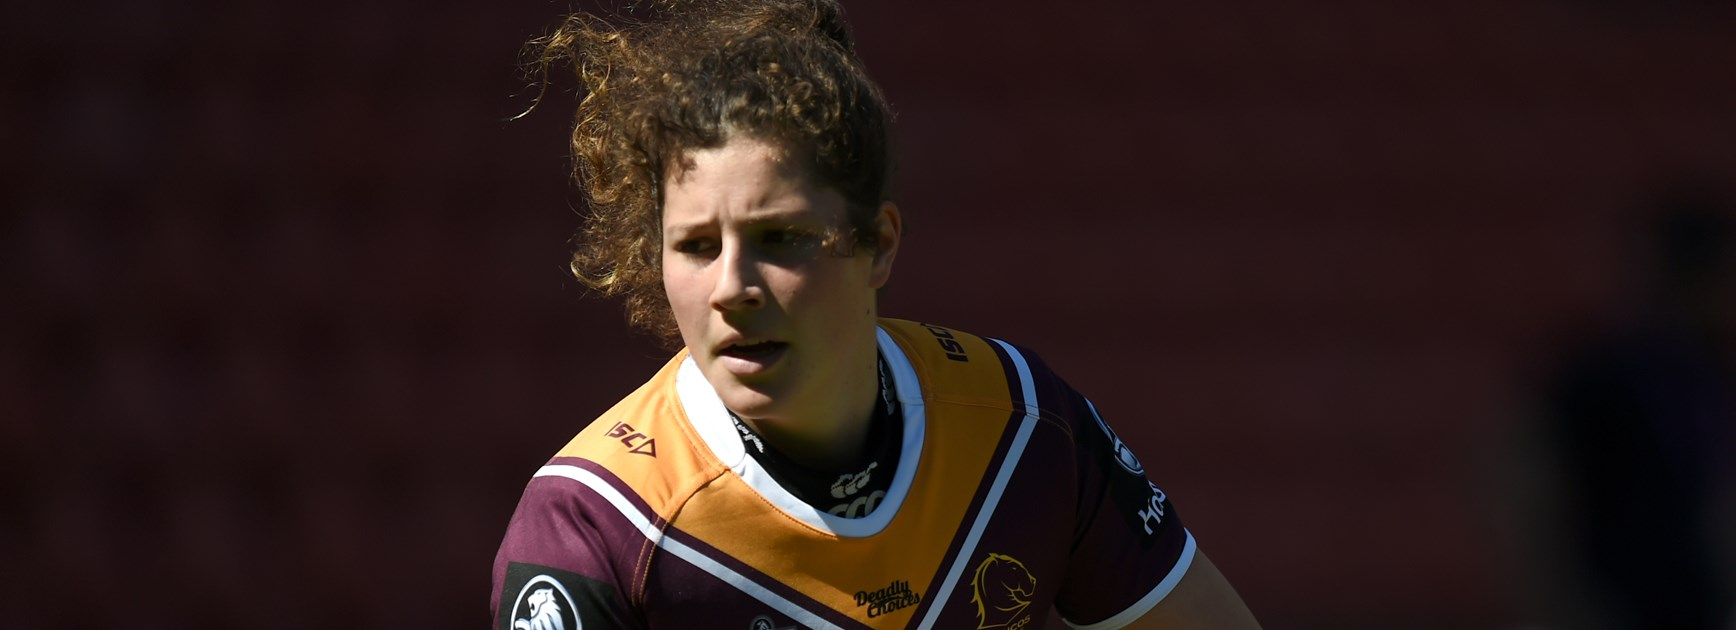 Young talent in the NRLW excites me